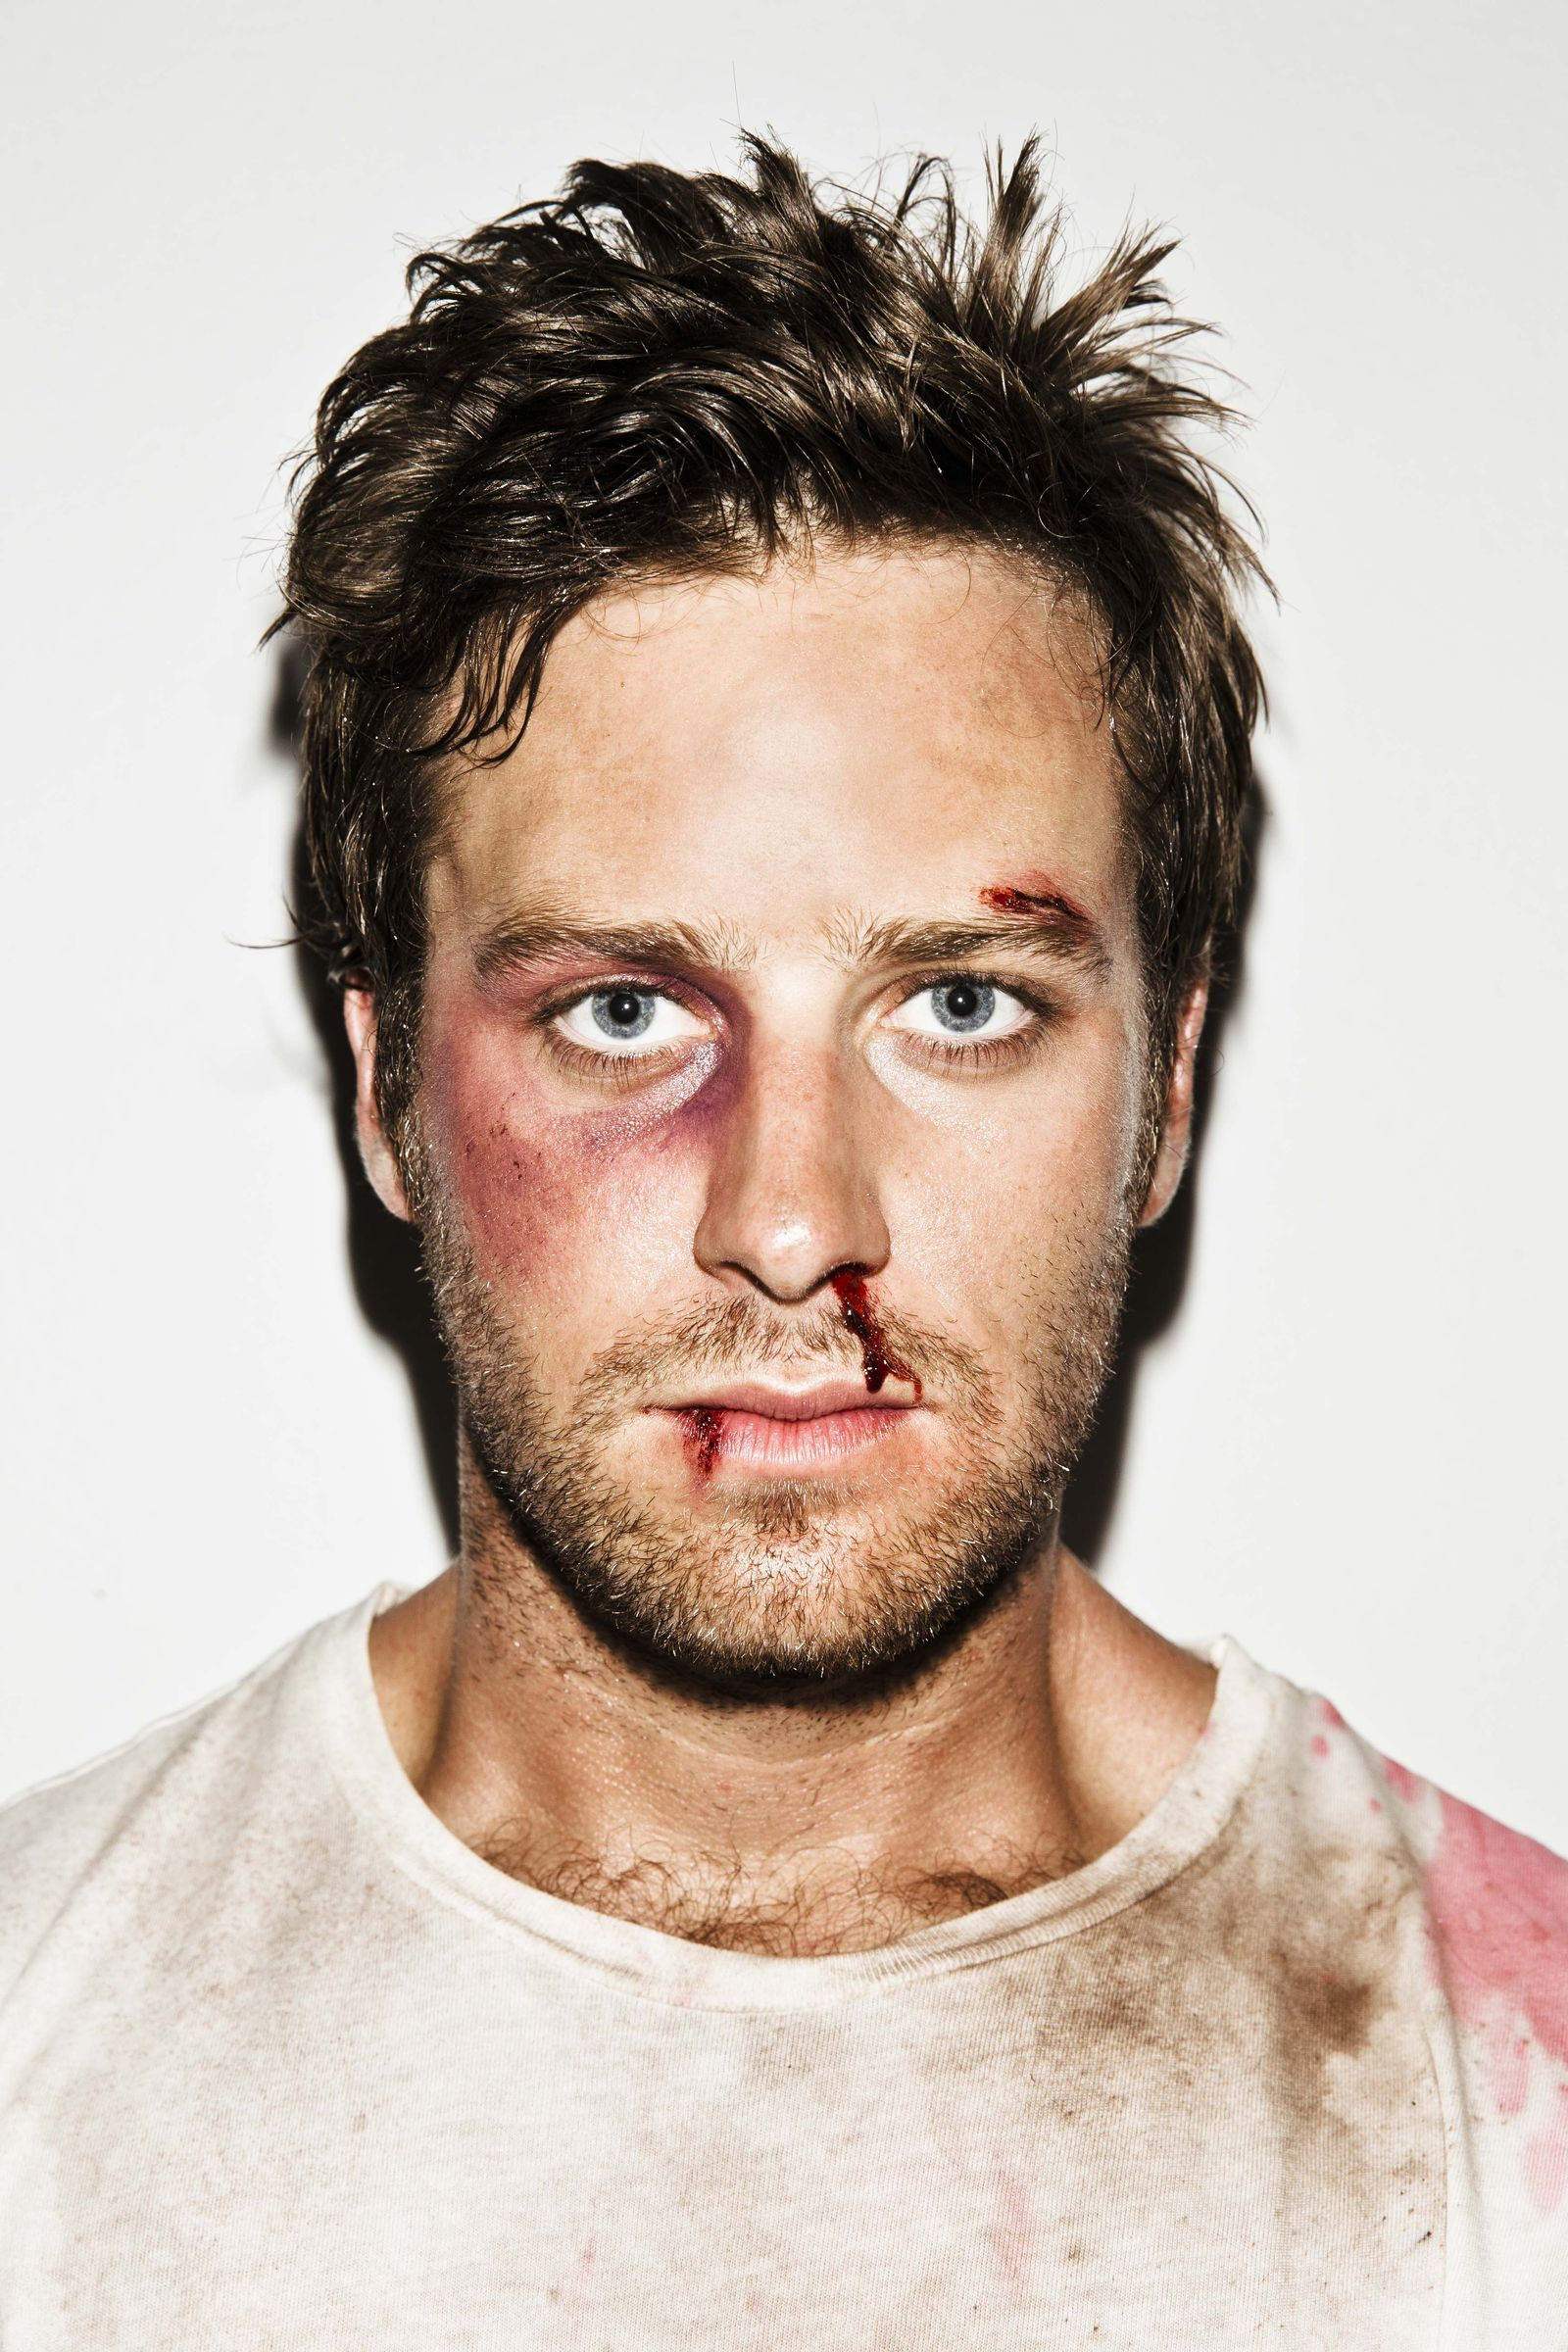 Armie Hammer bloodied, beaten for shoot | Face off makeup ...